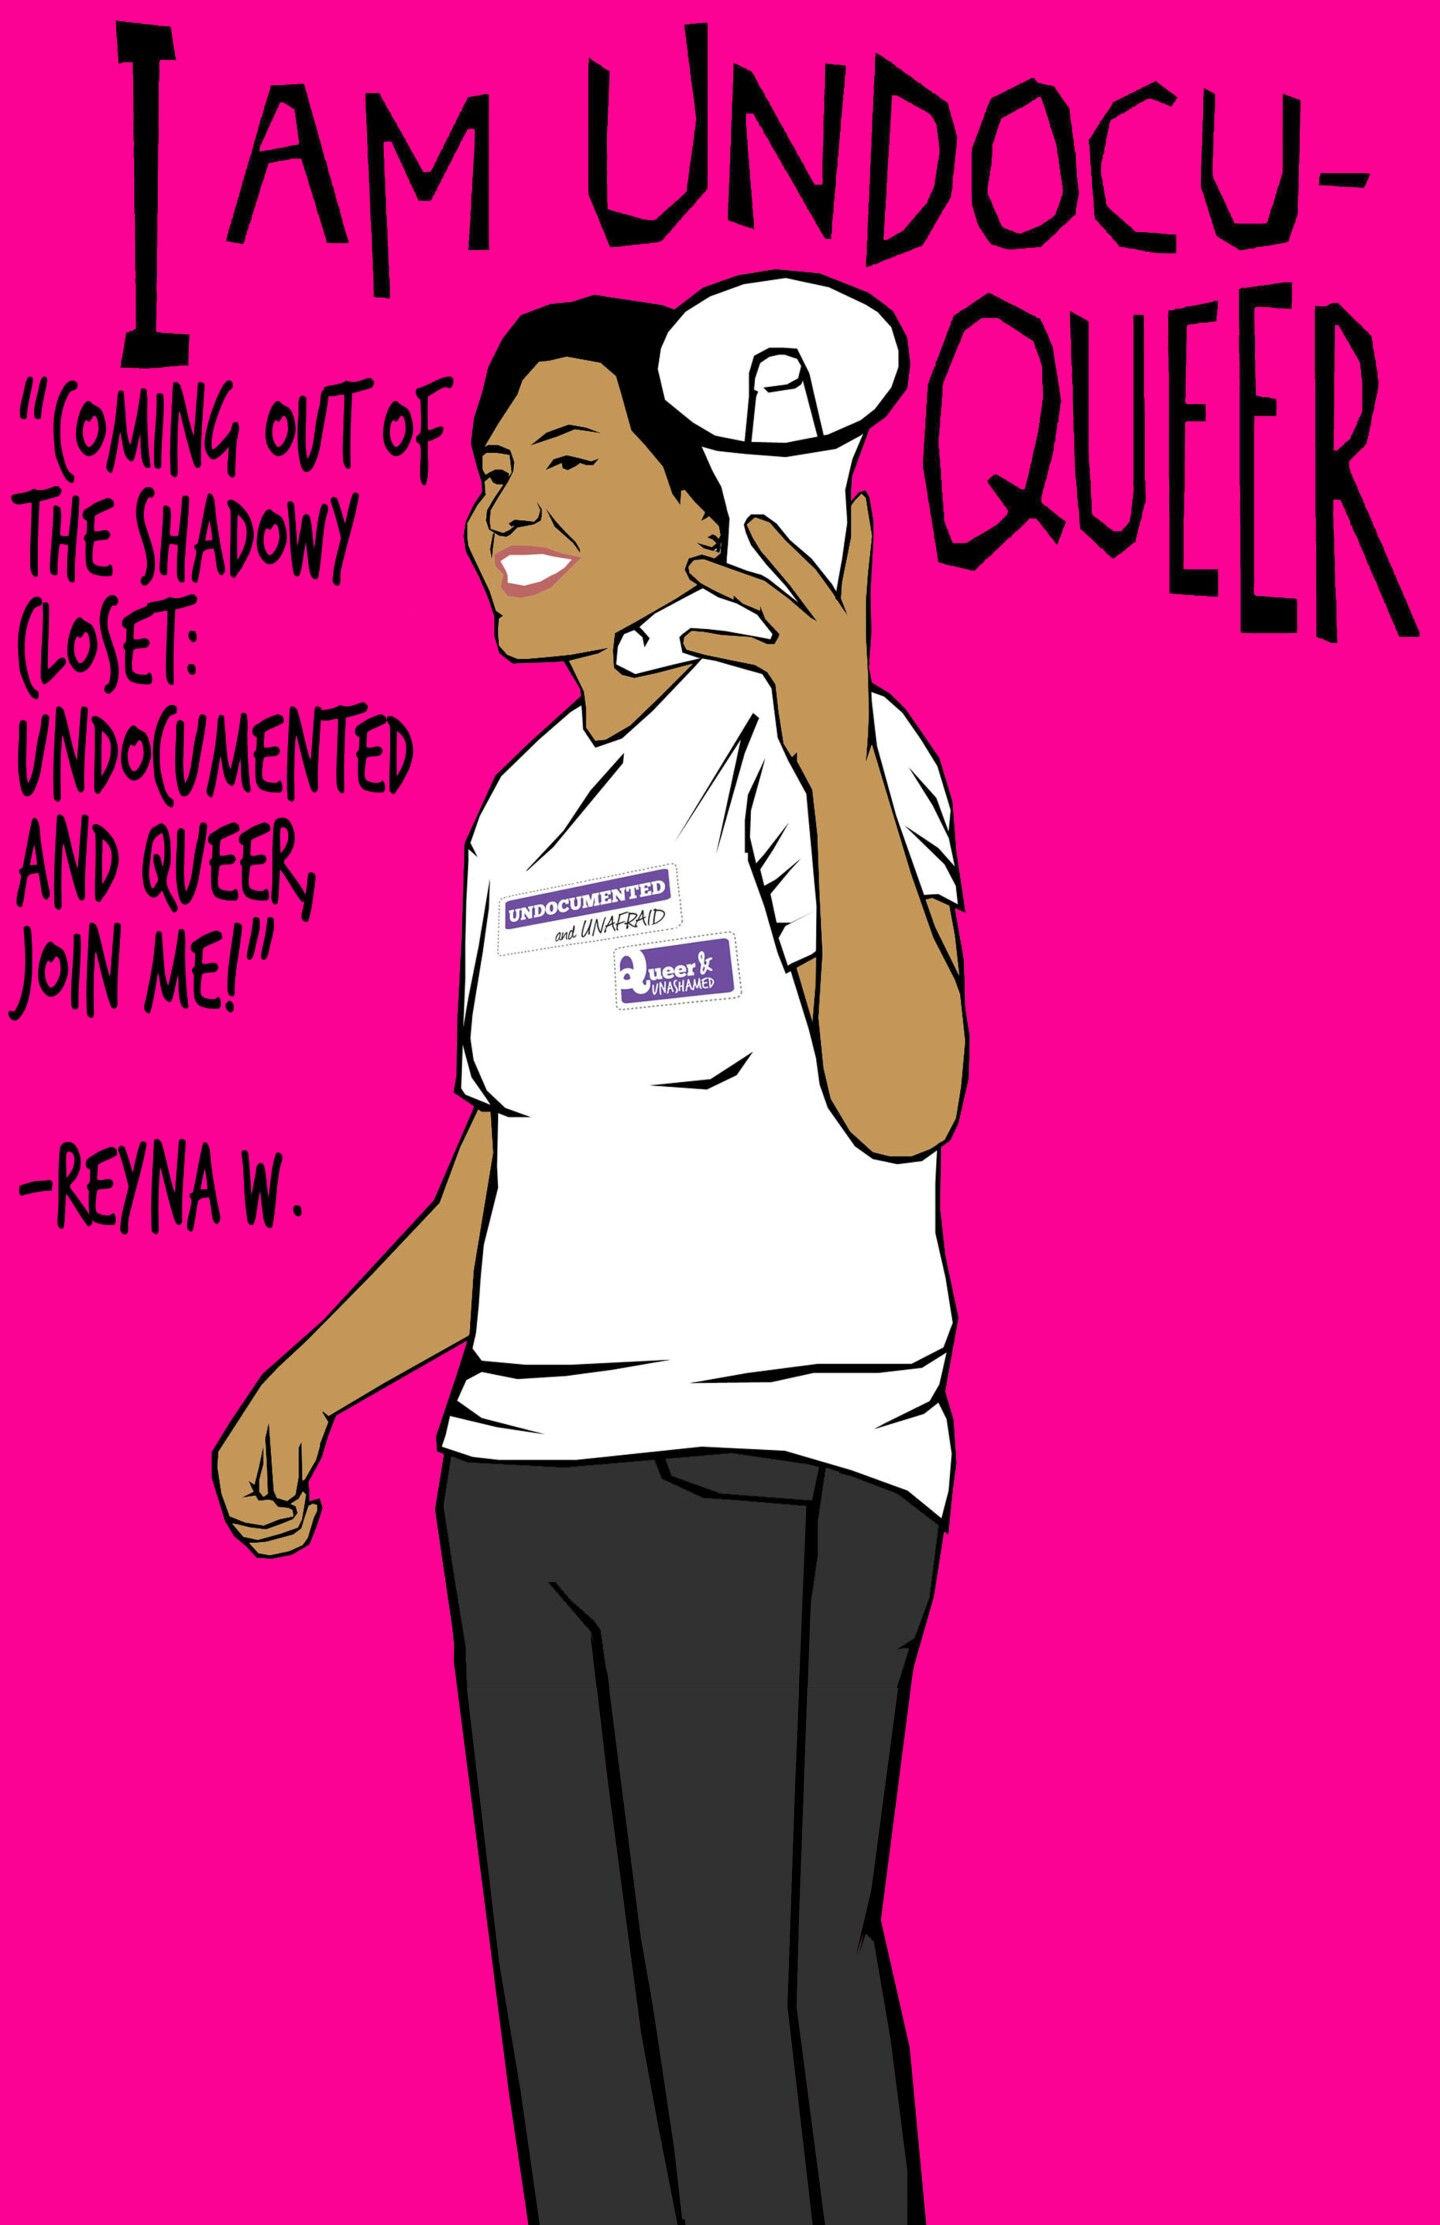 """An illustration by Julio Salgado depicts a person wearing white t-shirt and holding a bullhorn standing in front of a hot pink background. Above them are the words, """"I am UndocuQueer."""" To the left of them is a quite that reads, """"Coming out of the shadowy closet: Undocumented and queer, join me! - Reyna W."""""""